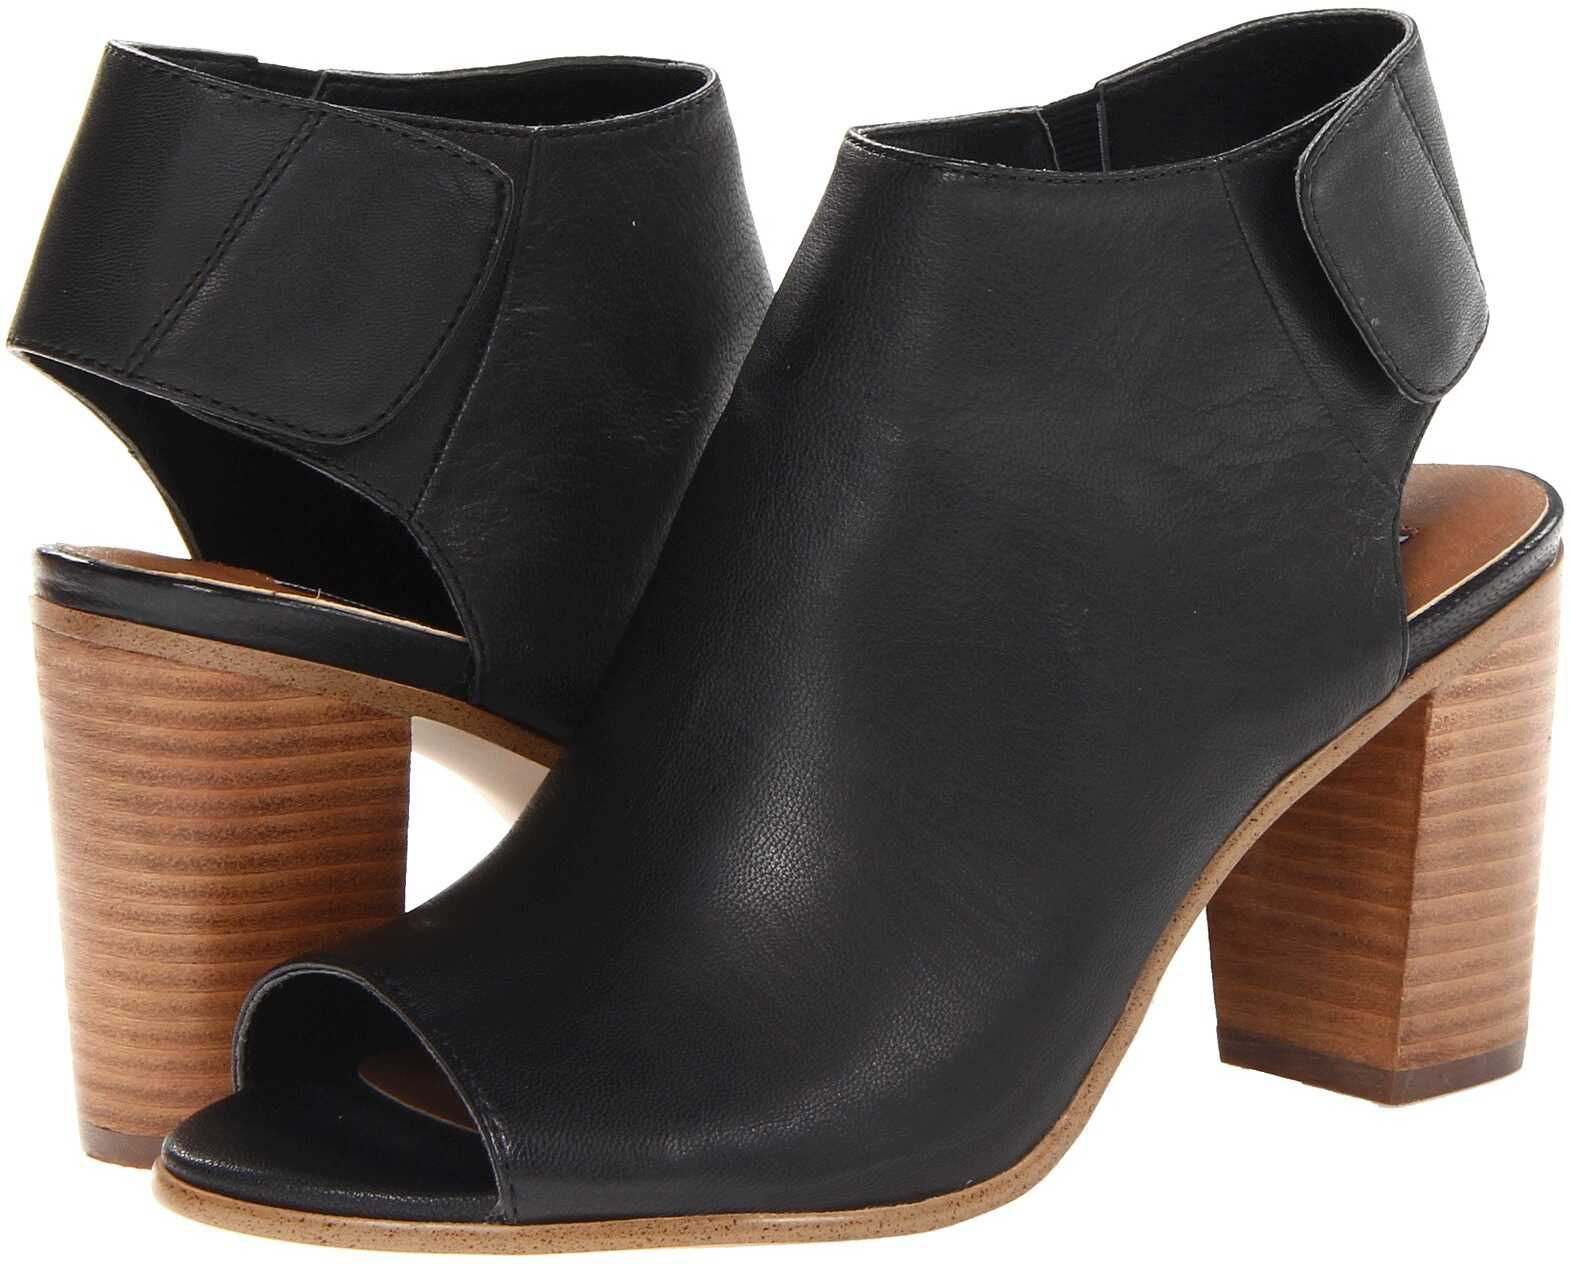 Steve Madden Nonstp Heel Black Leather